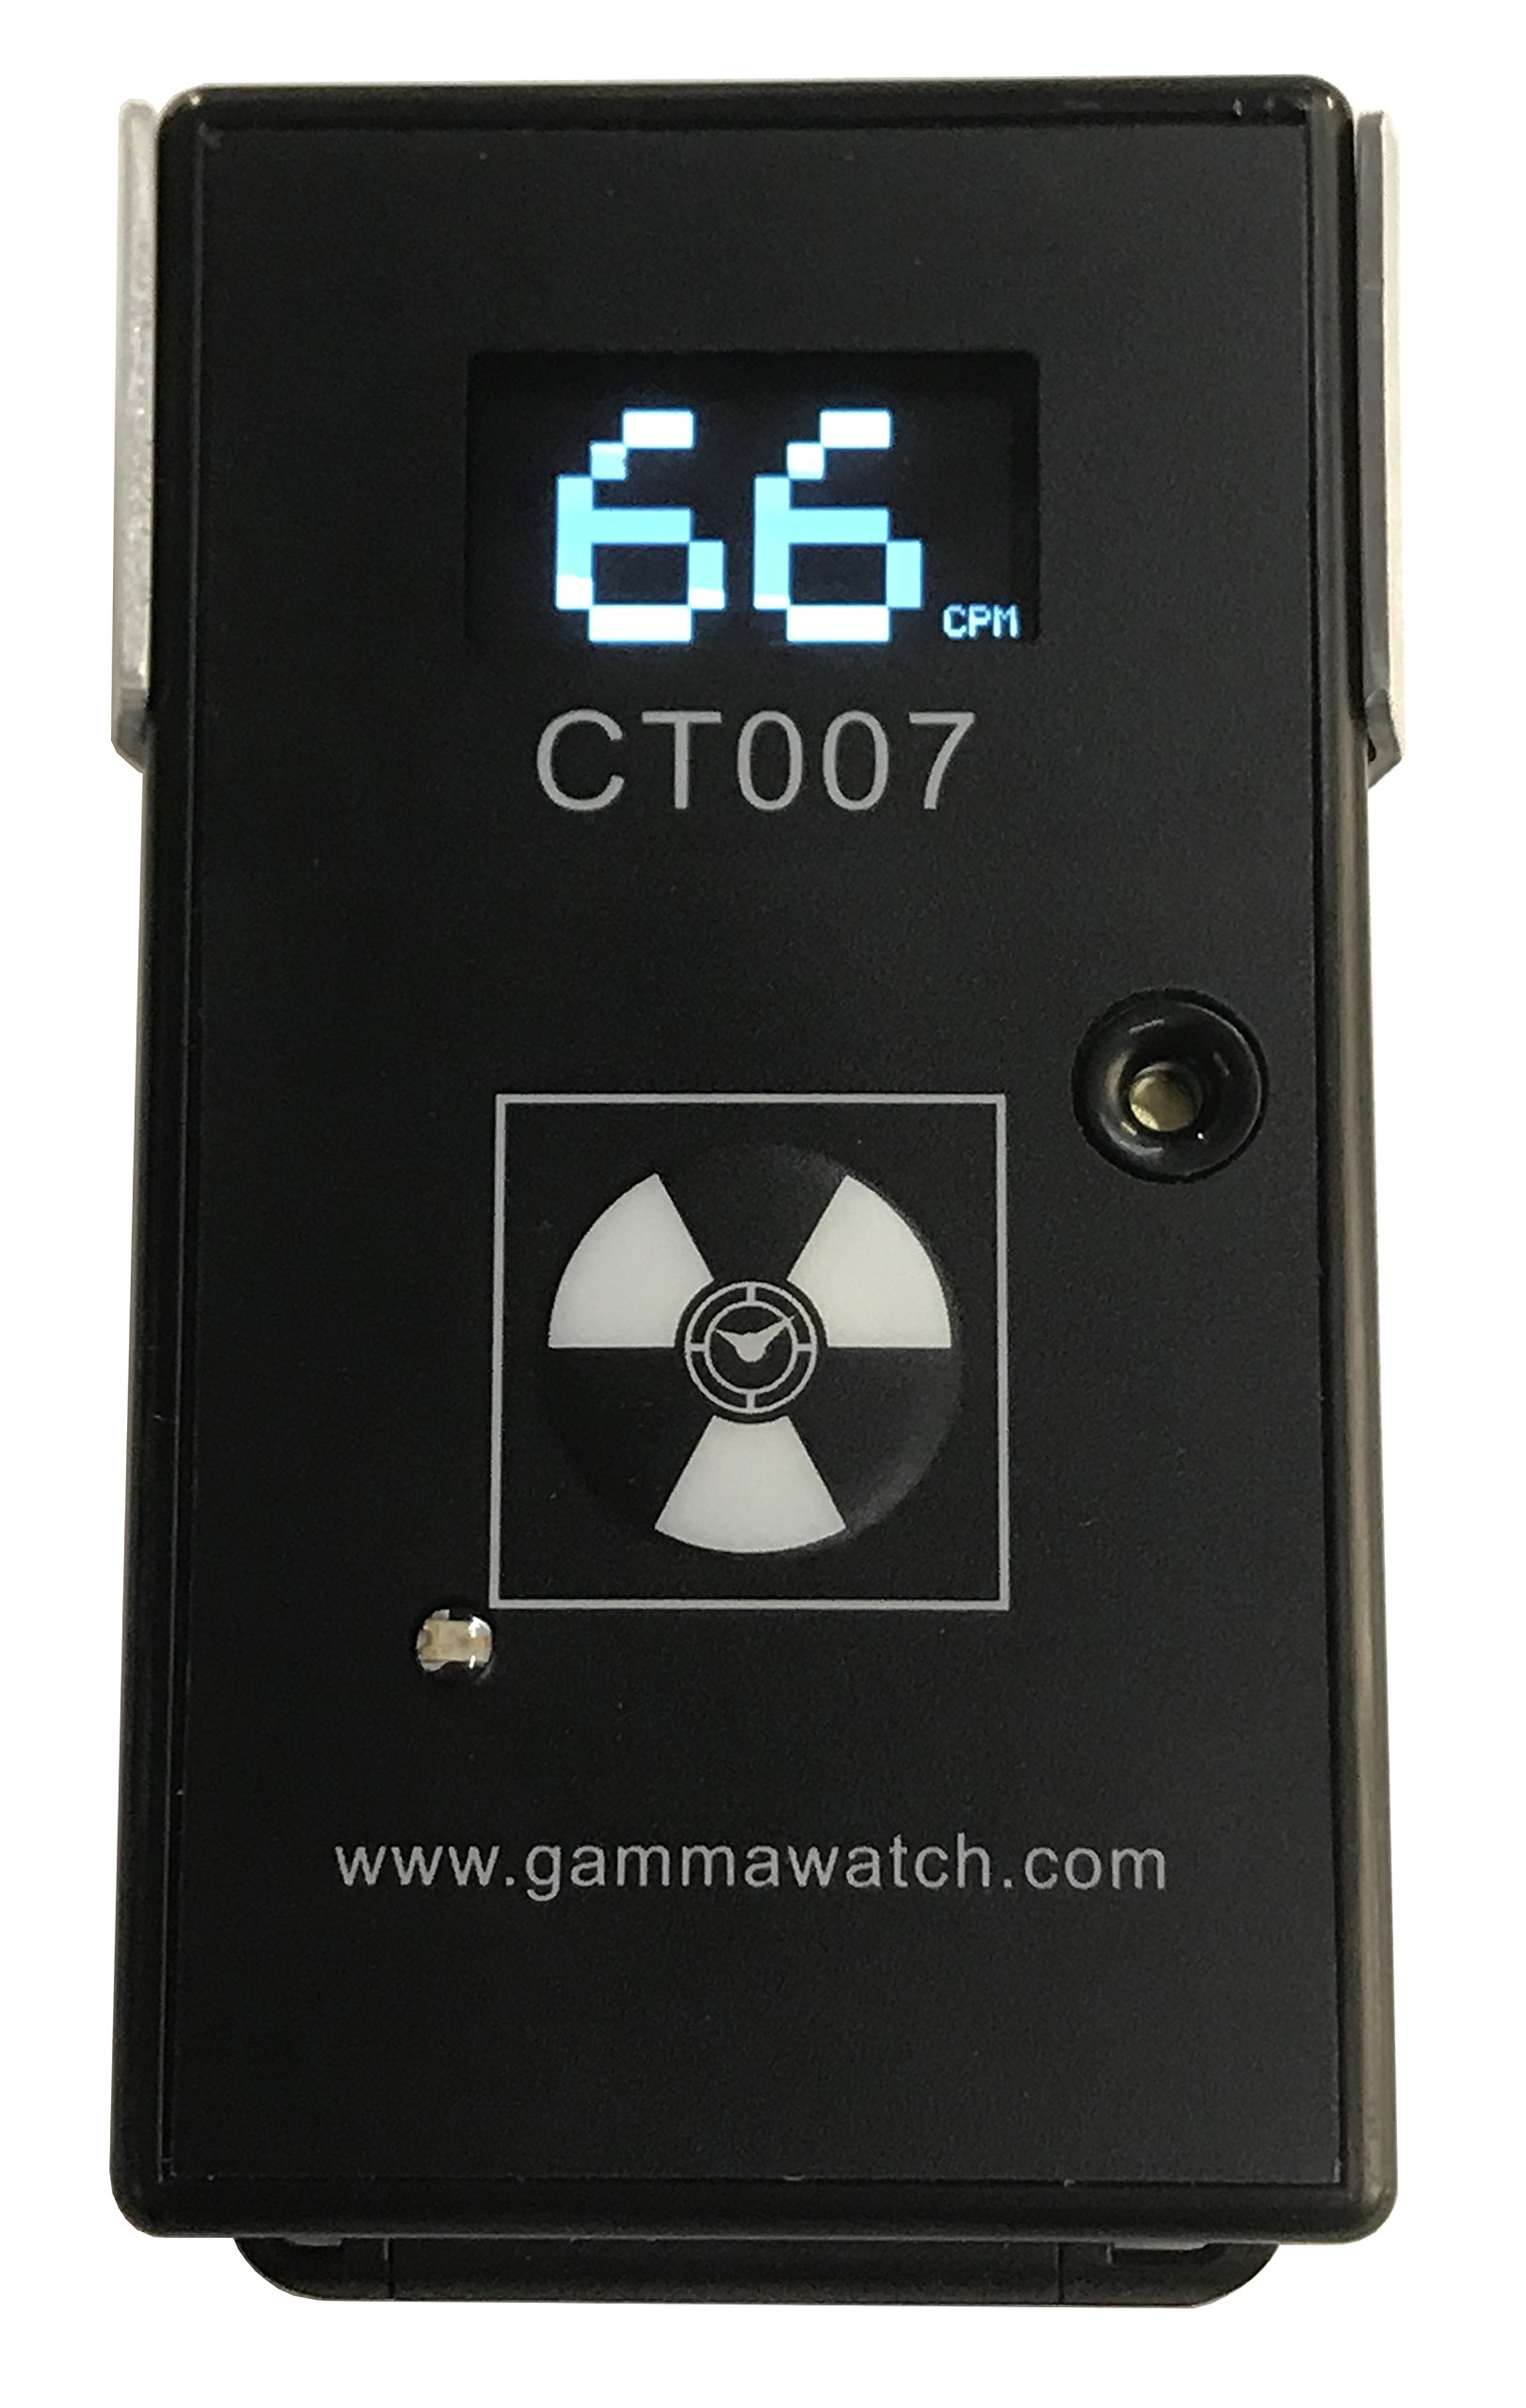 CT007-F Radiation and Radioactive Contamination Detector - Complete Alpha, Beta, Gamma Detection - Bluetooth 4.0